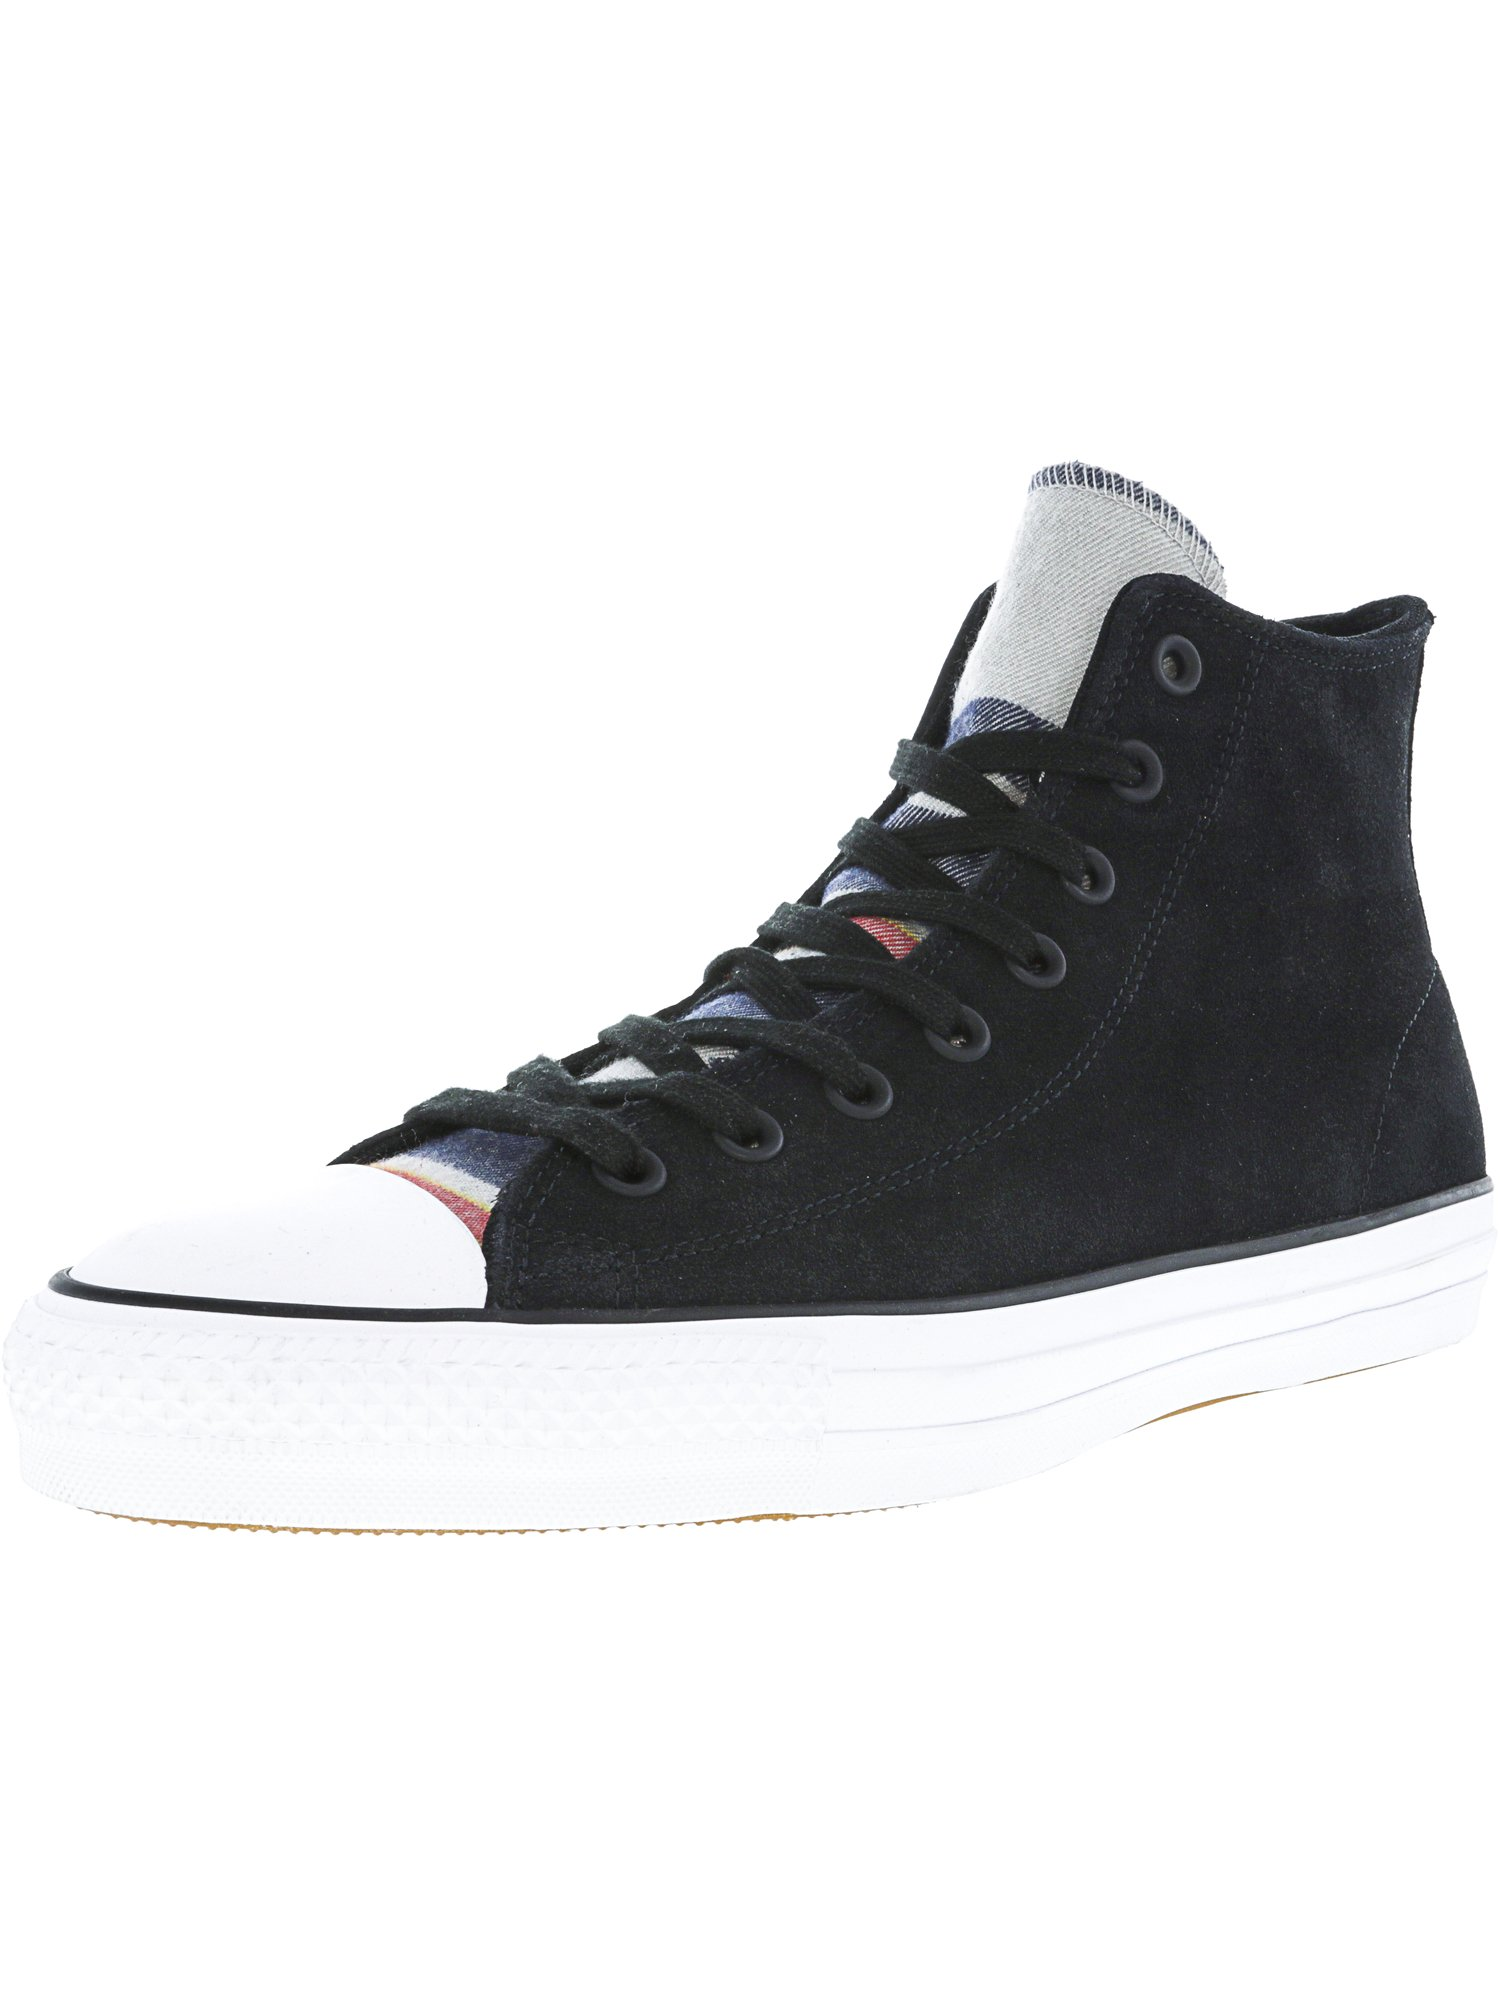 2a4a0abdf714 Converse Chuck Taylor All Star Pro Blanket Stripe Hi Black   White High-Top  Suede Fashion Sneaker - 12M 10M